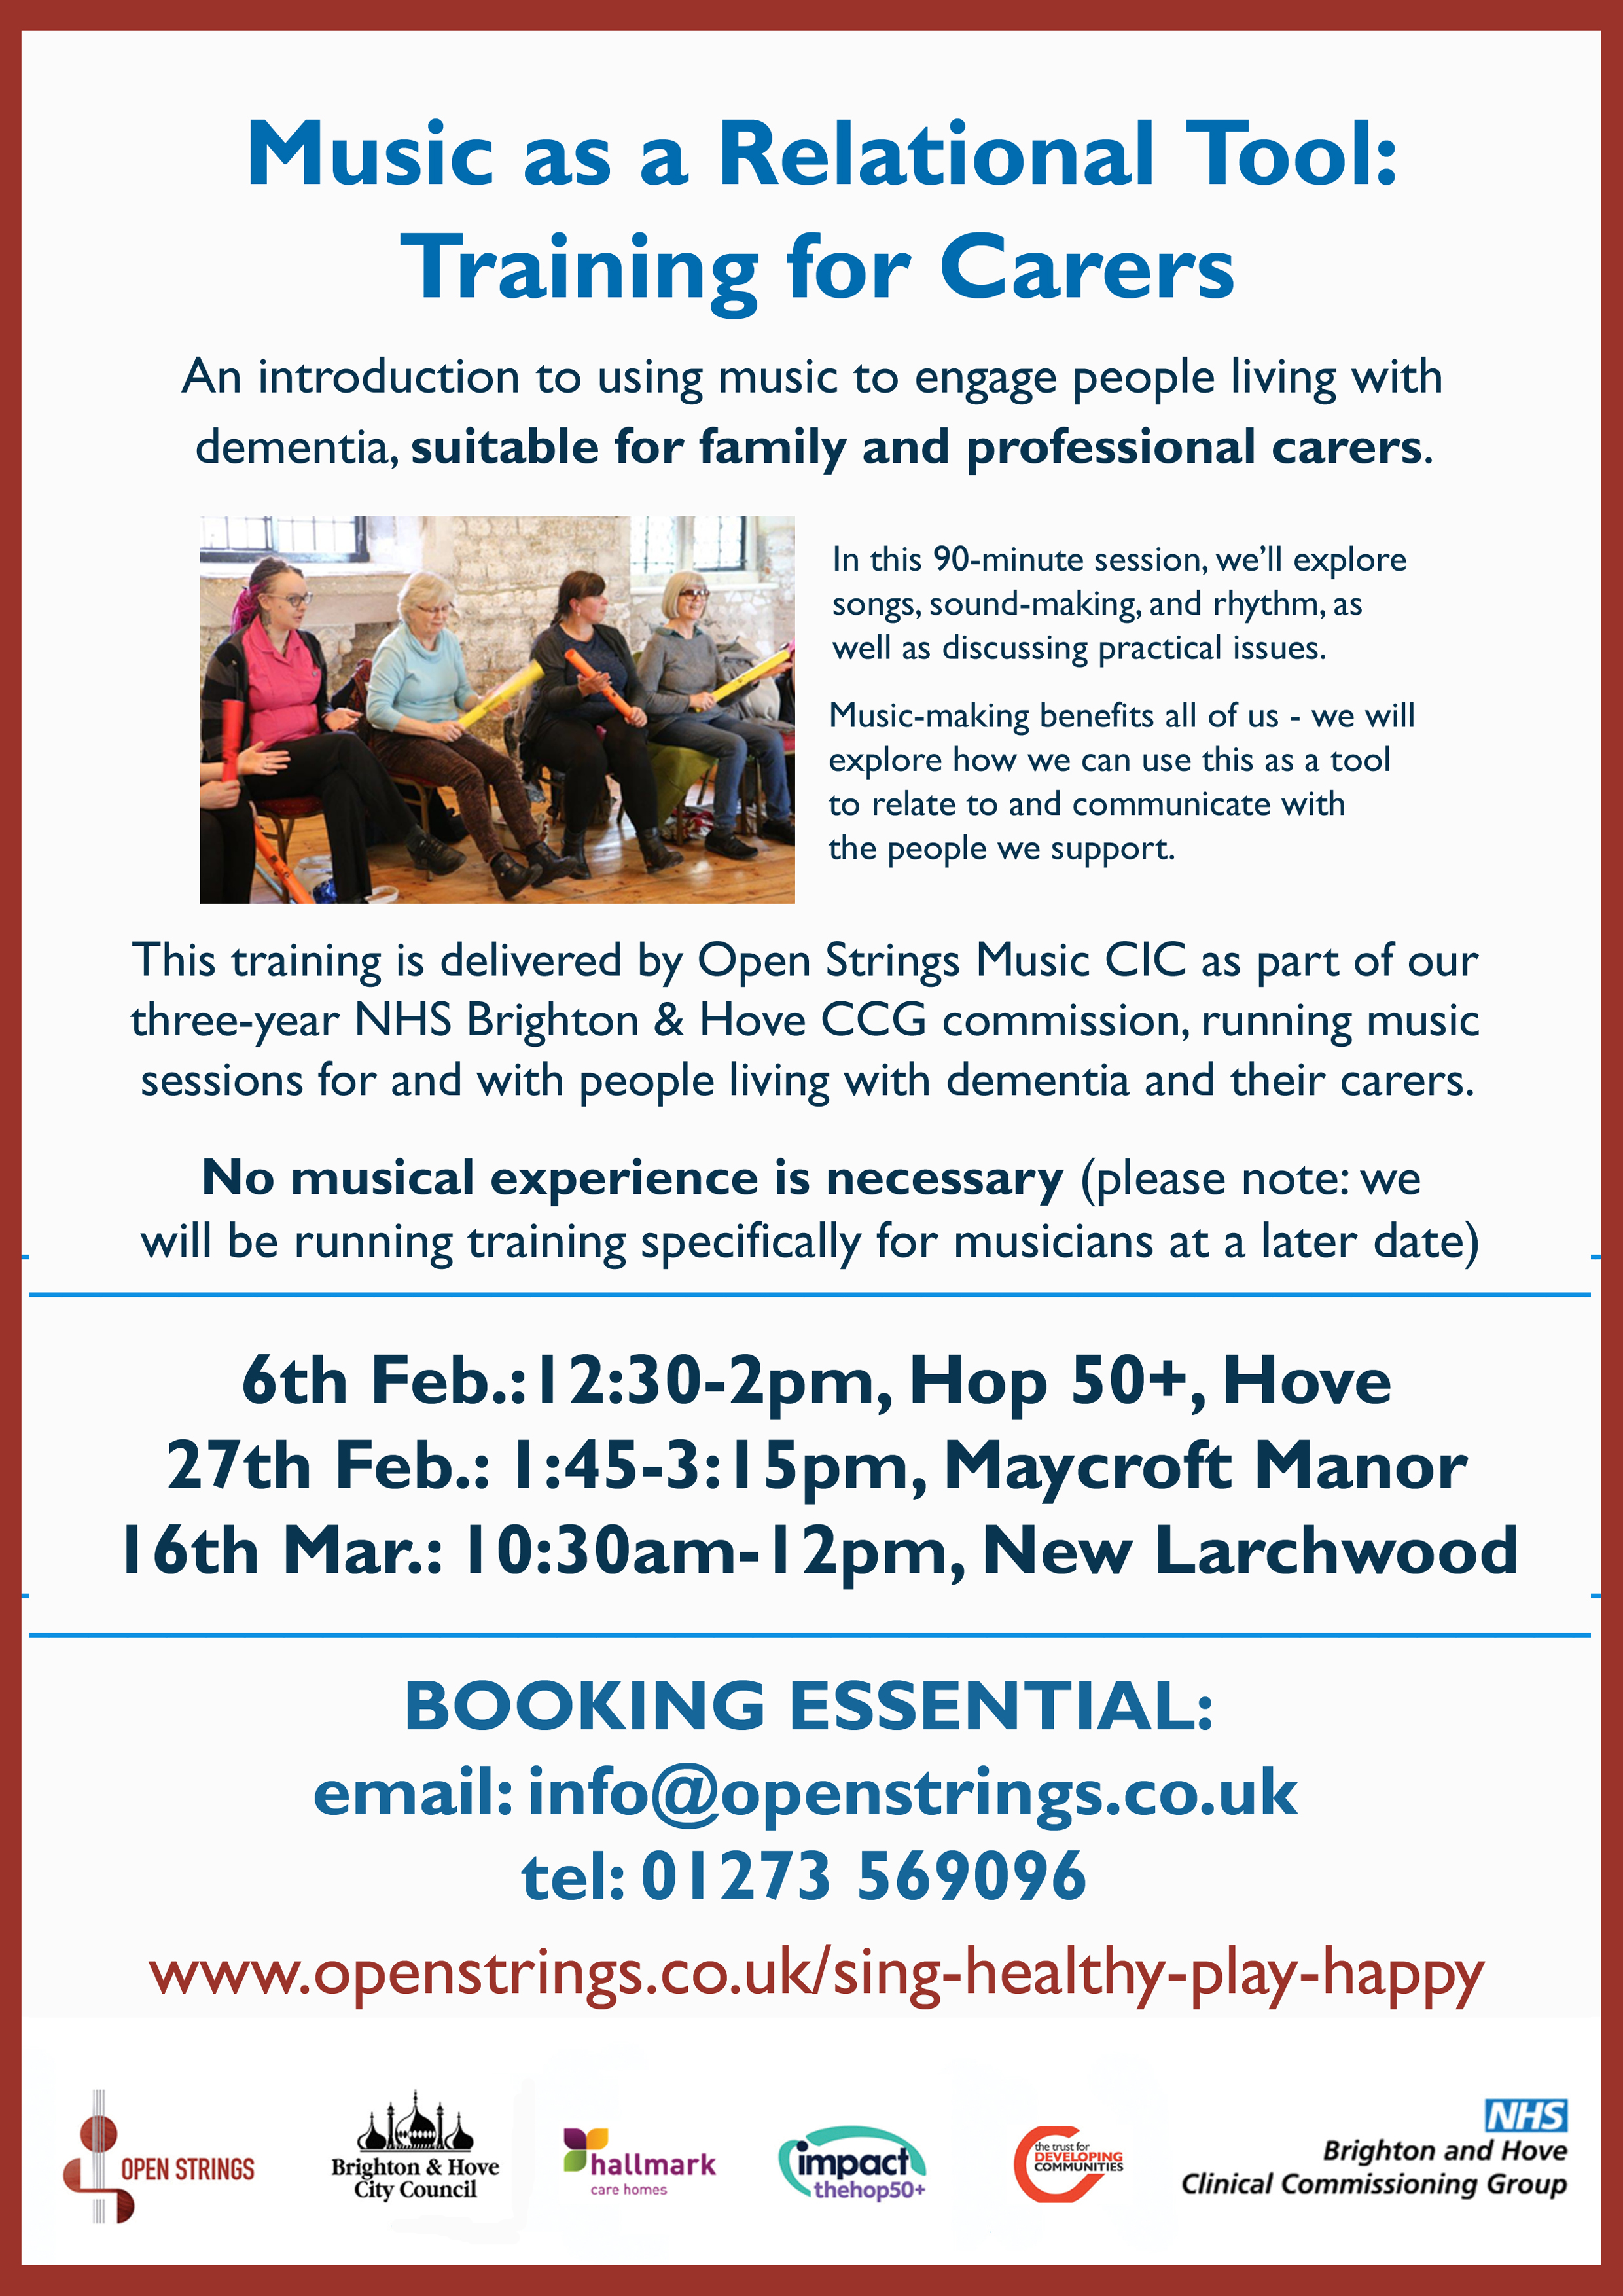 Music-making training for carers, Spring '18 – Open Strings